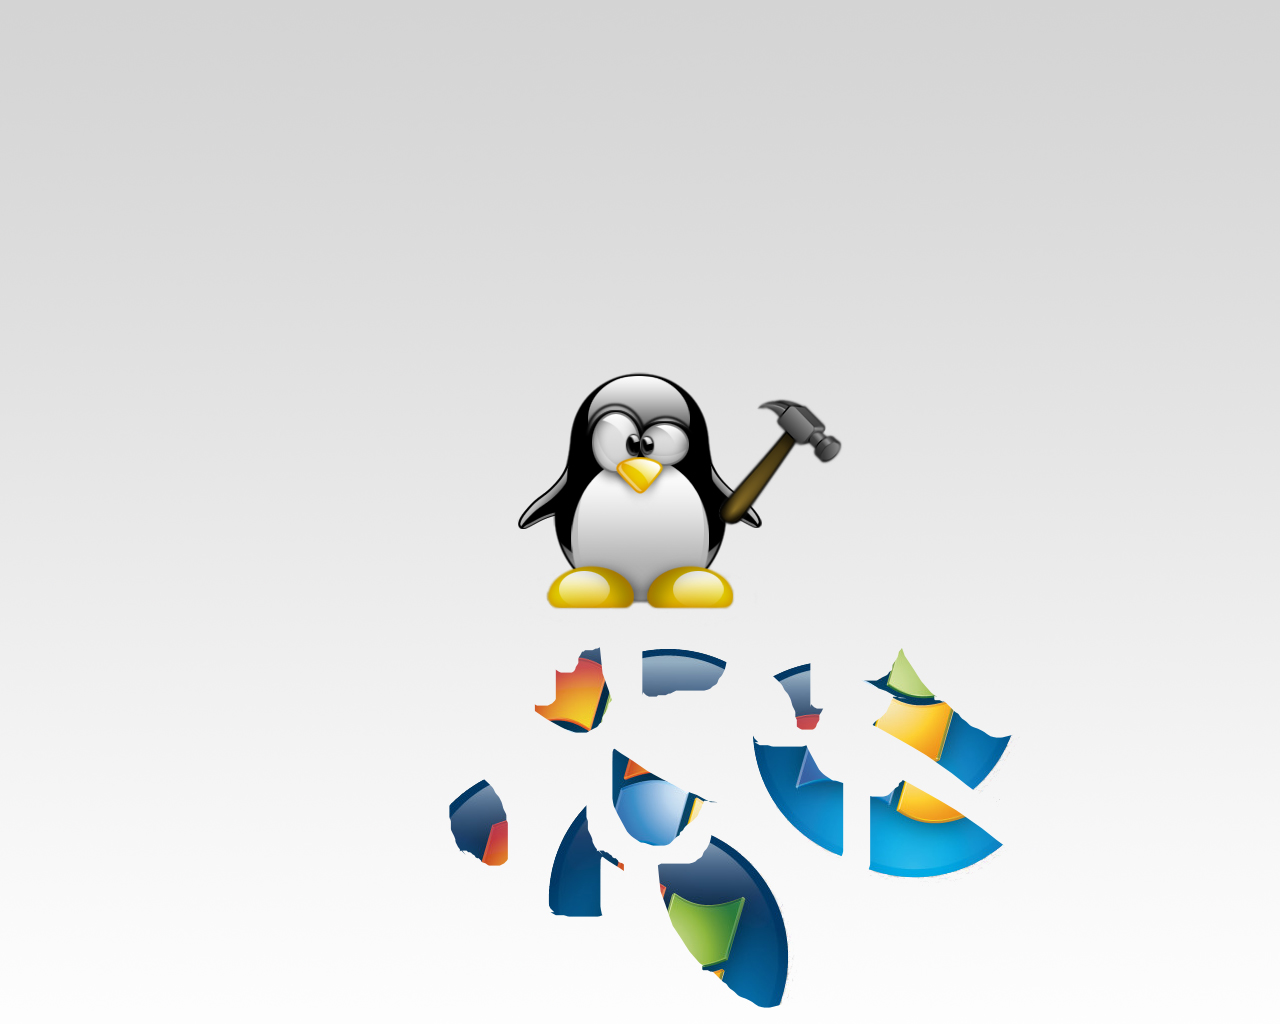 img-wallpapers-tux-vs-vista-sosoe222-3386